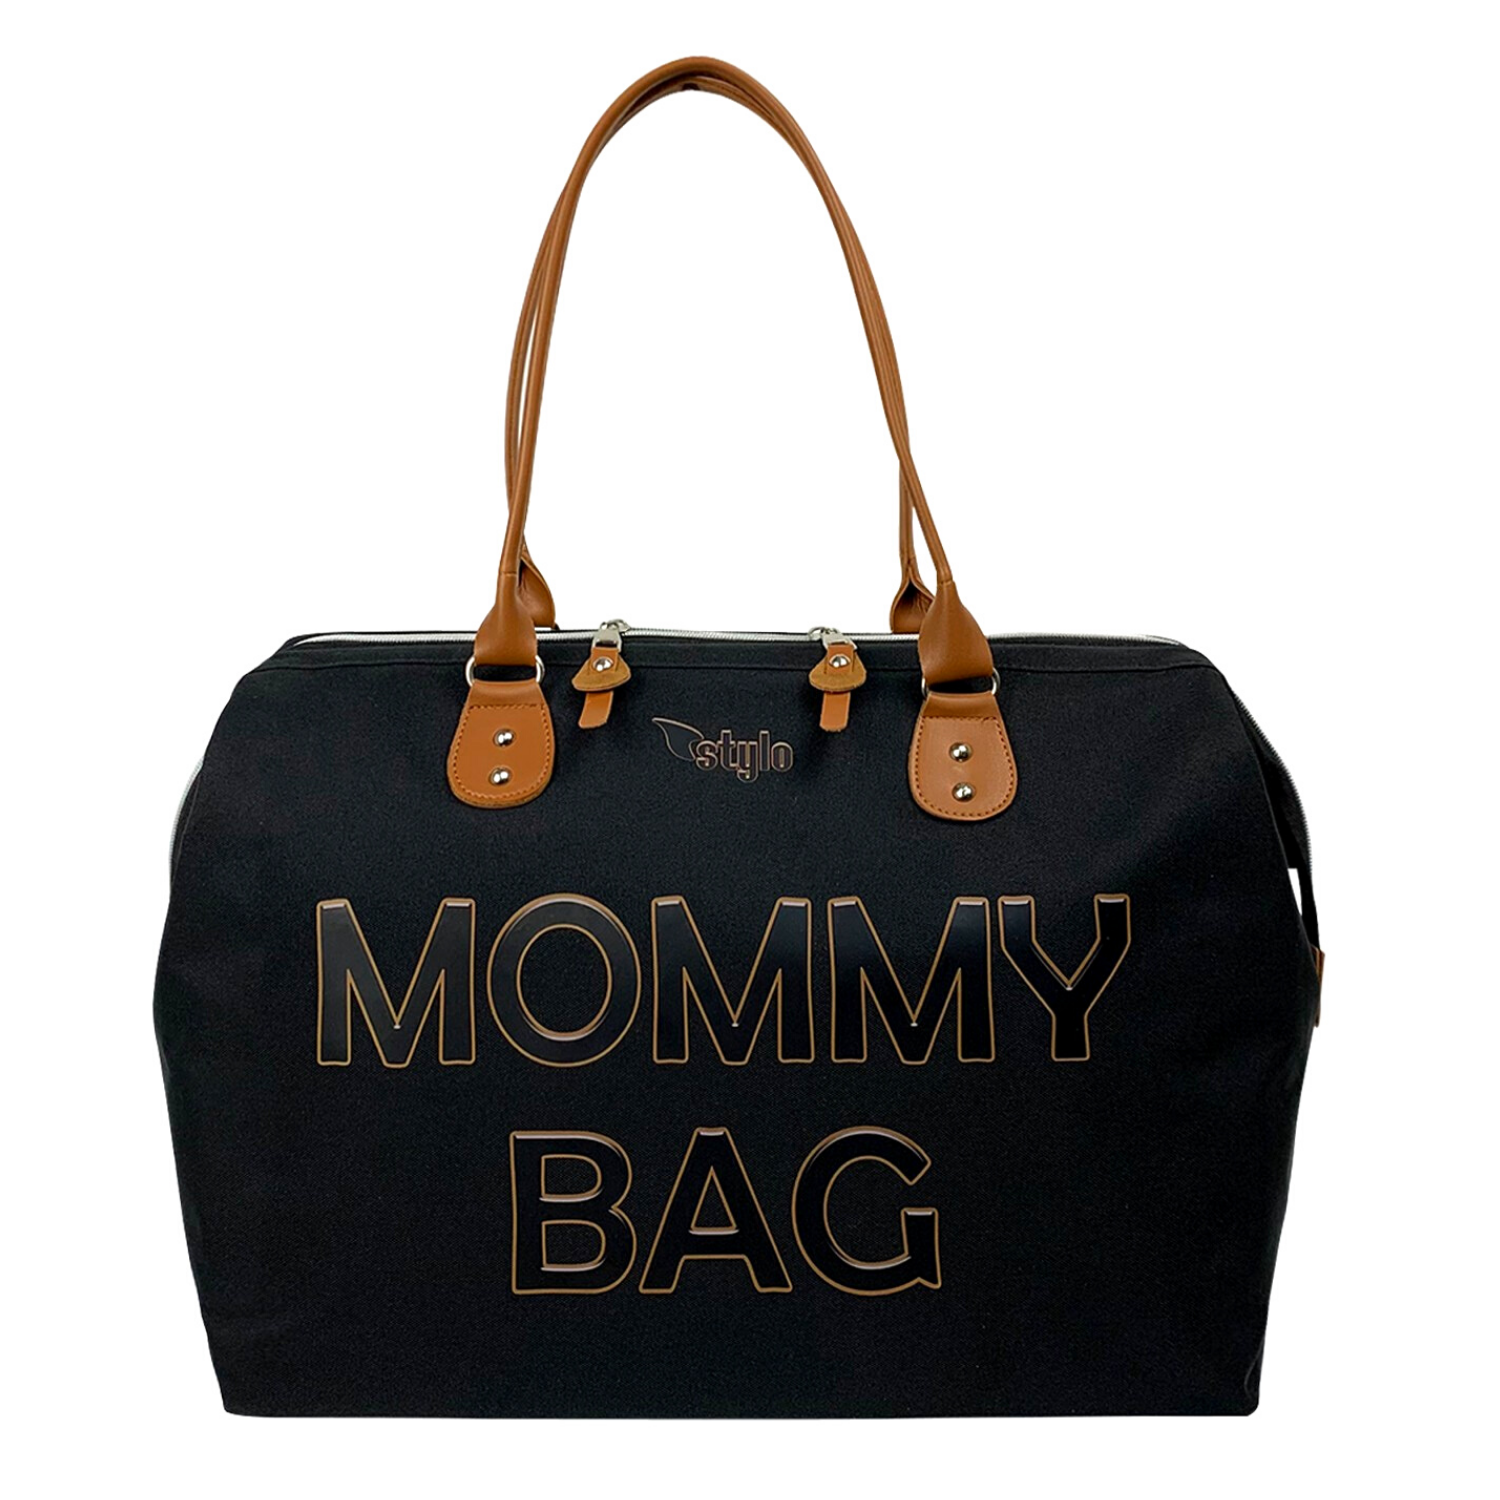 2021 Mommy Diaper Bags Mother Large Capacity Travel Nappy Backpacks Convenient Baby Care Nursing Bag Maternity